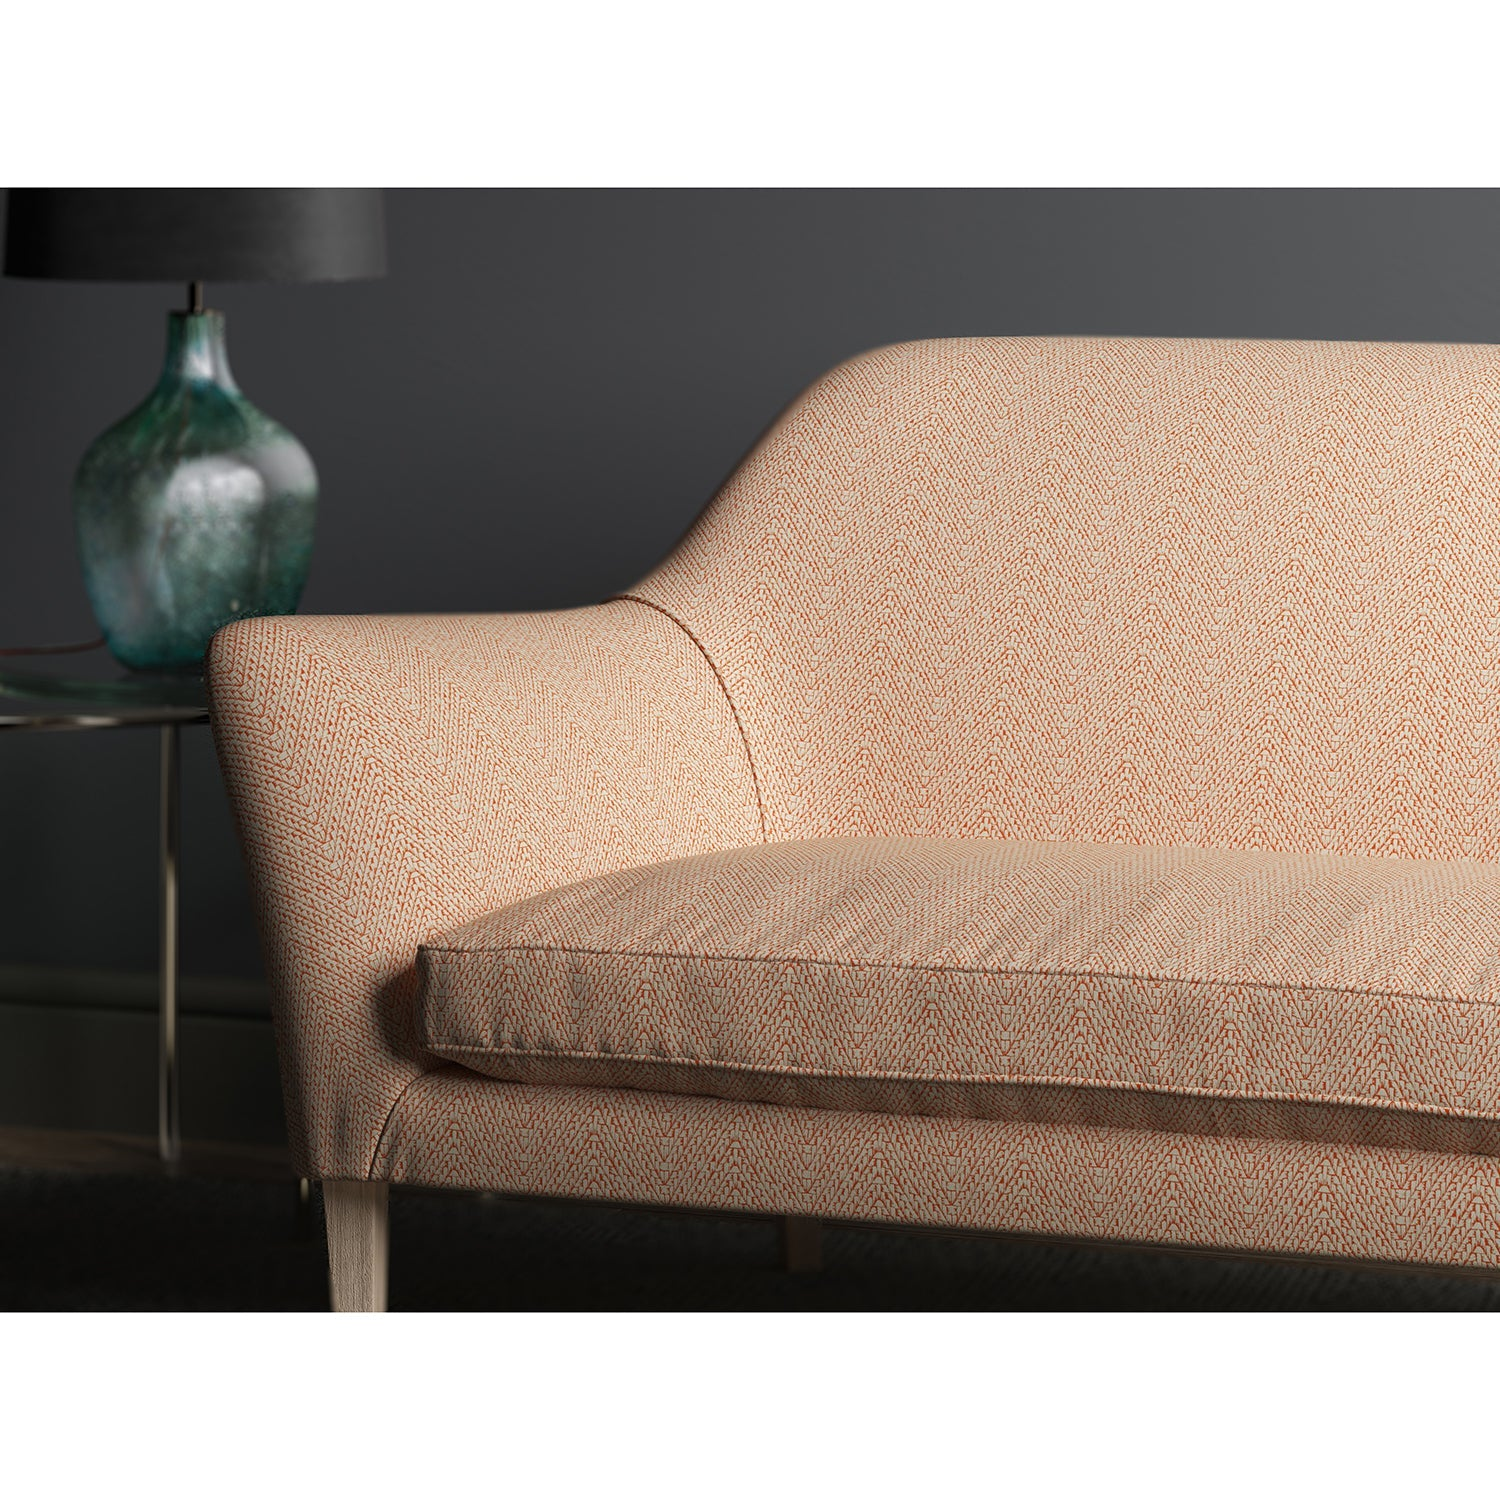 Sofa upholstered in orange and neutral geometric weave. Design name Salta, colourway Orange.